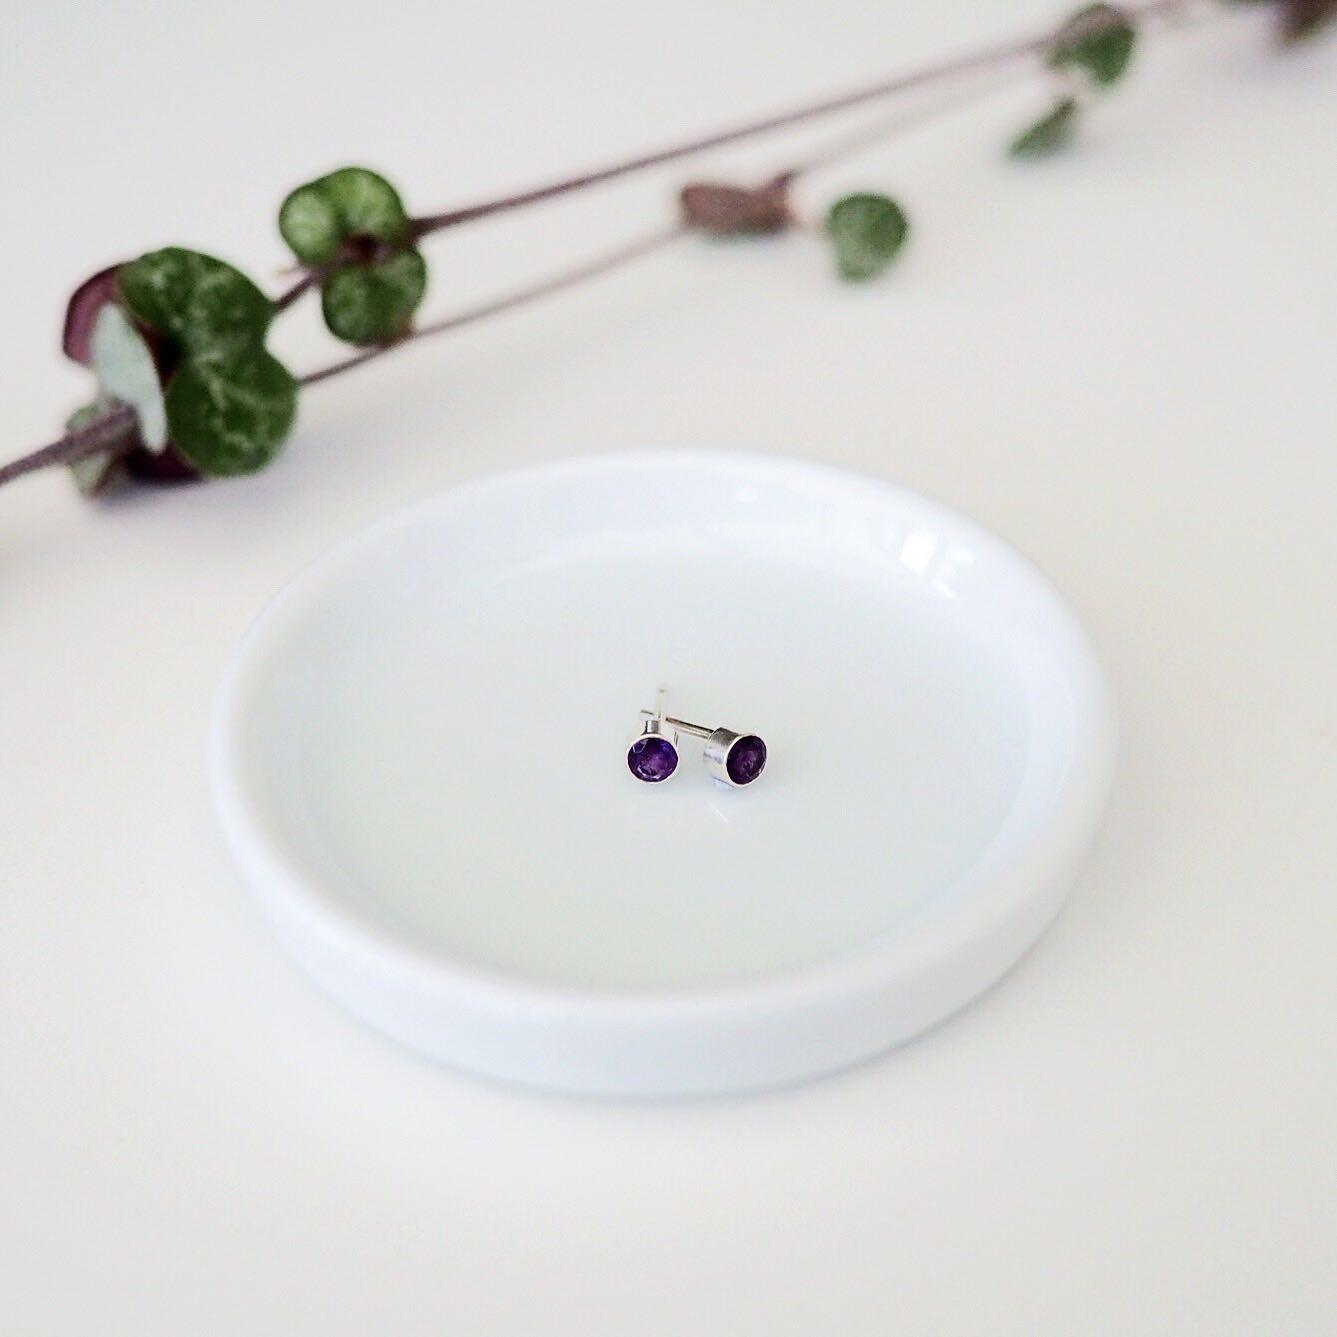 Amethyst Ethical Stud Earrings